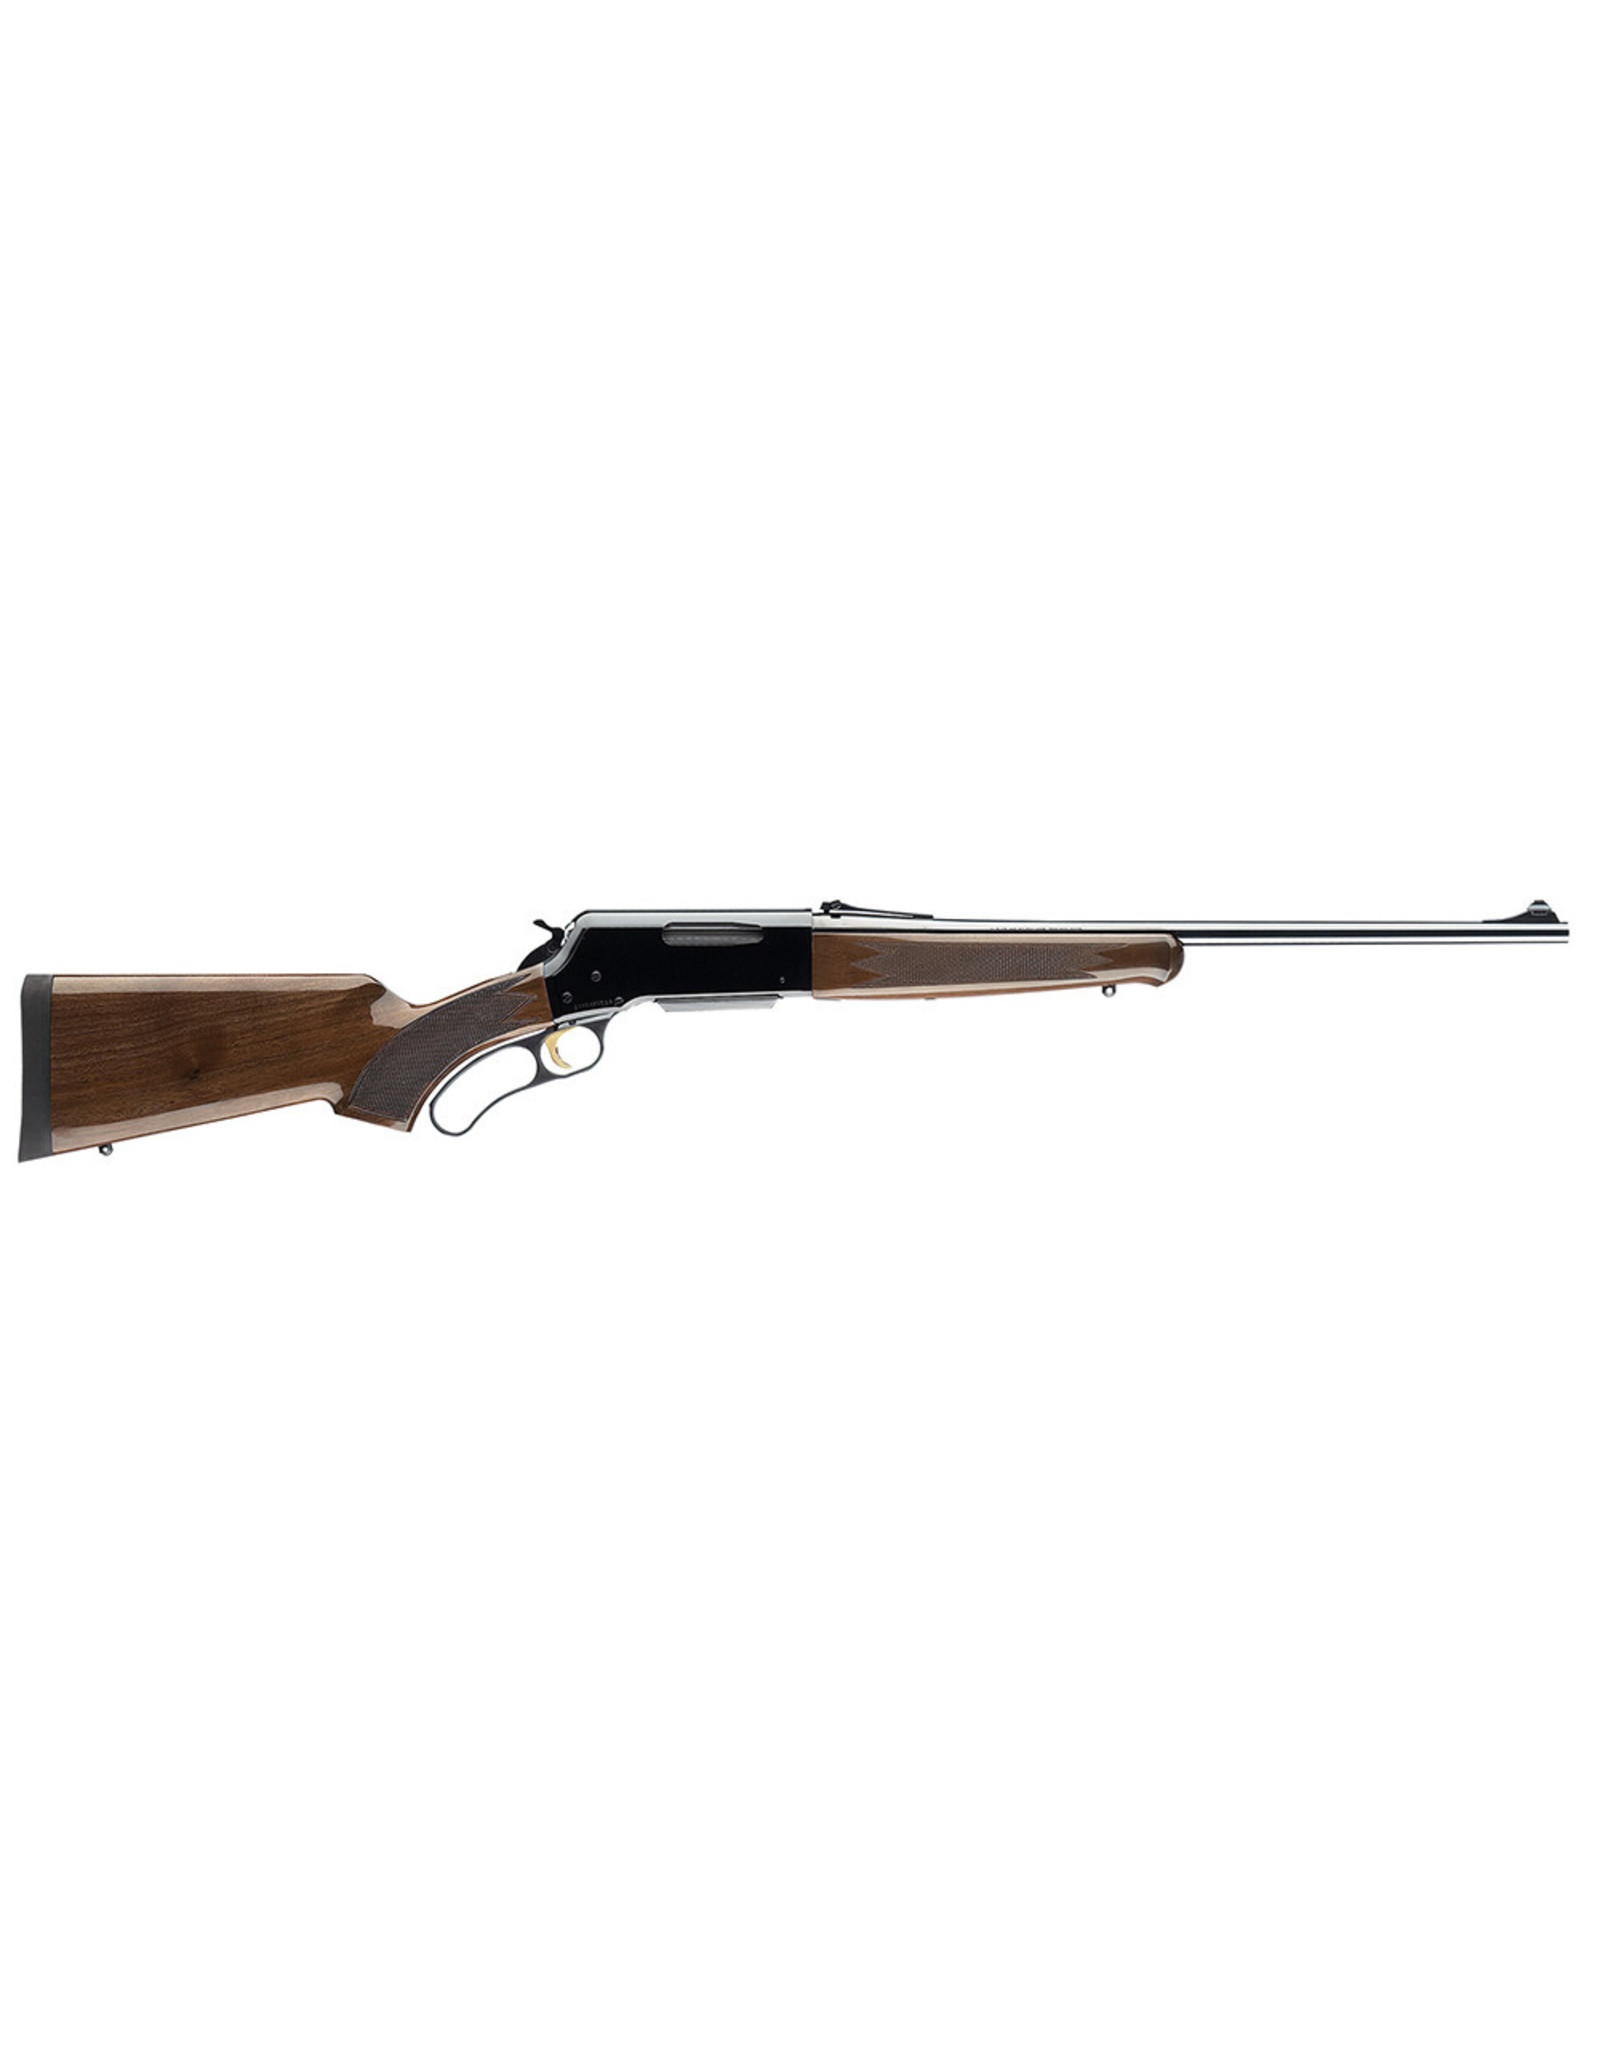 "Browning Browning BLR Lightweight .243 Win 20"" bbl"